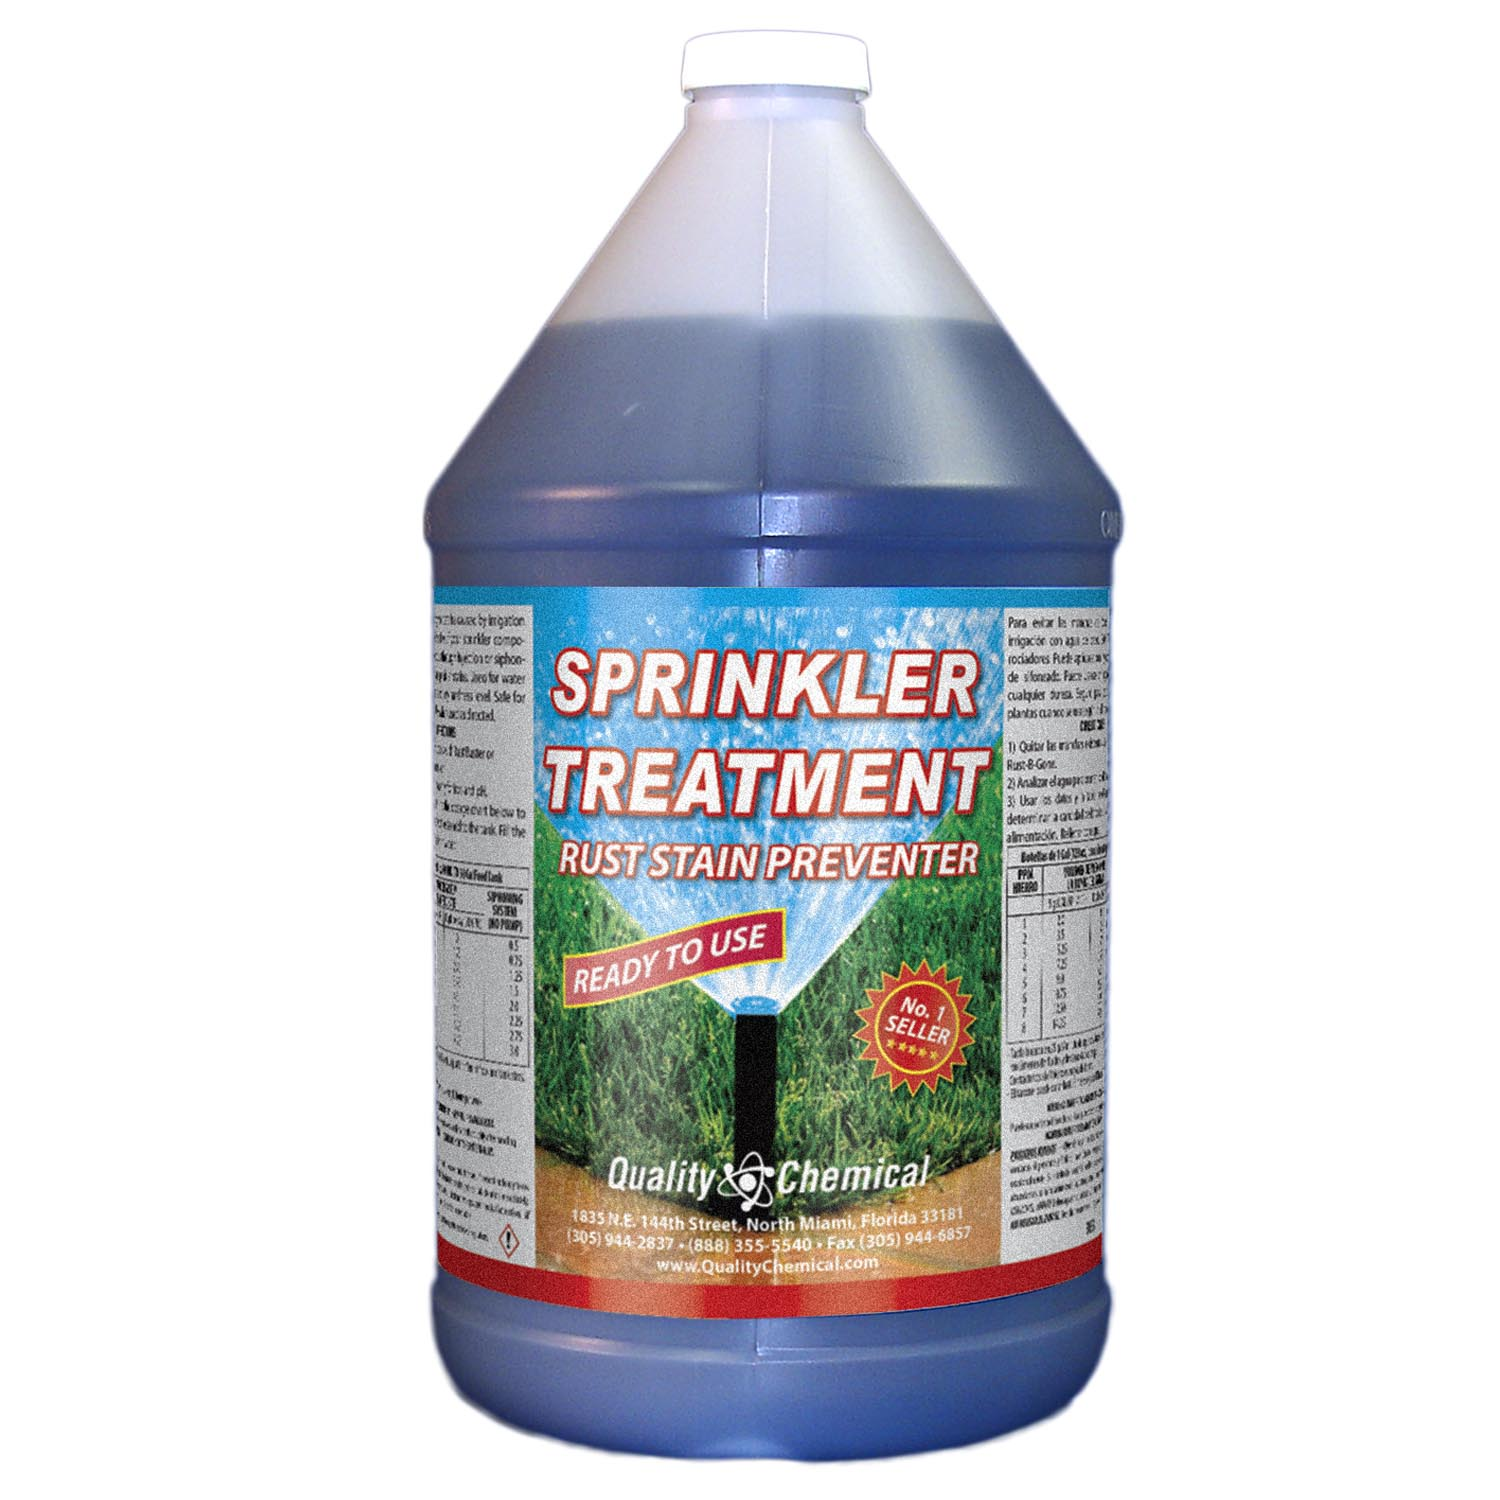 Sprinkler Treatment Rust Stain Preventor